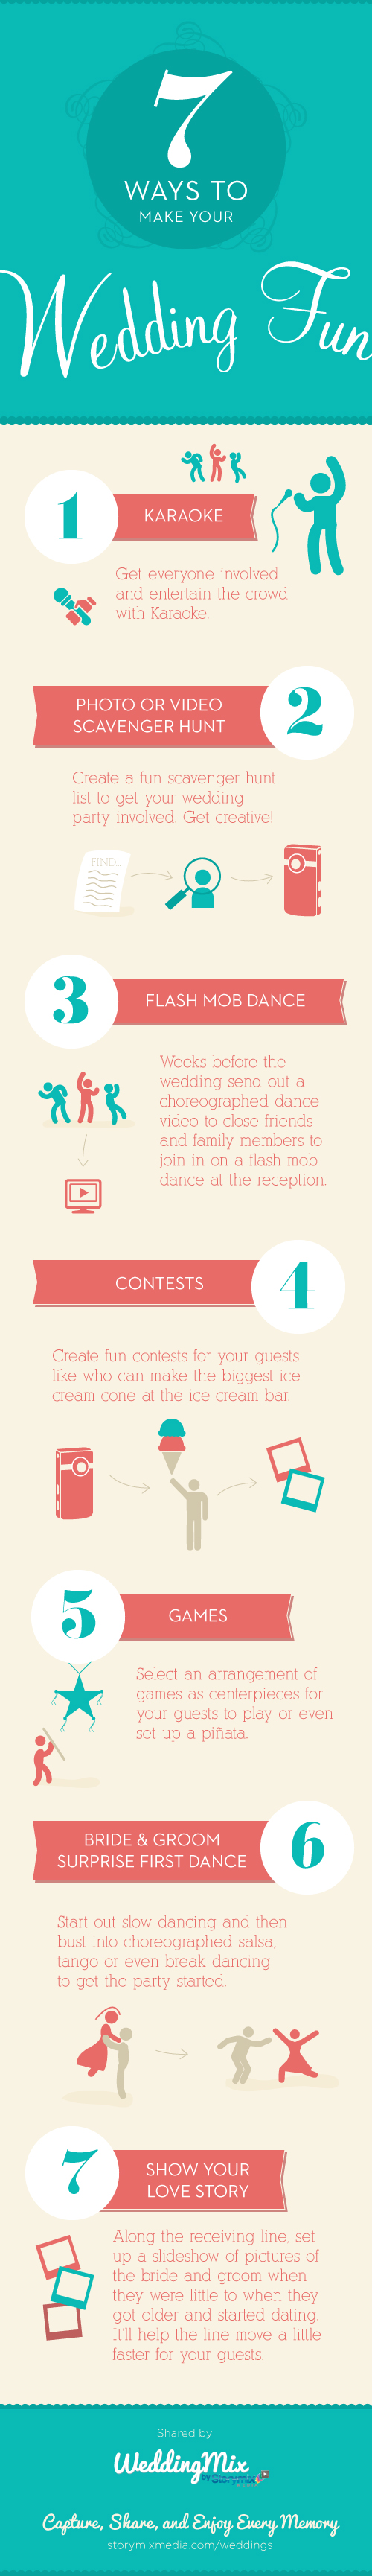 7 ideas to make your wedding entertainment fun